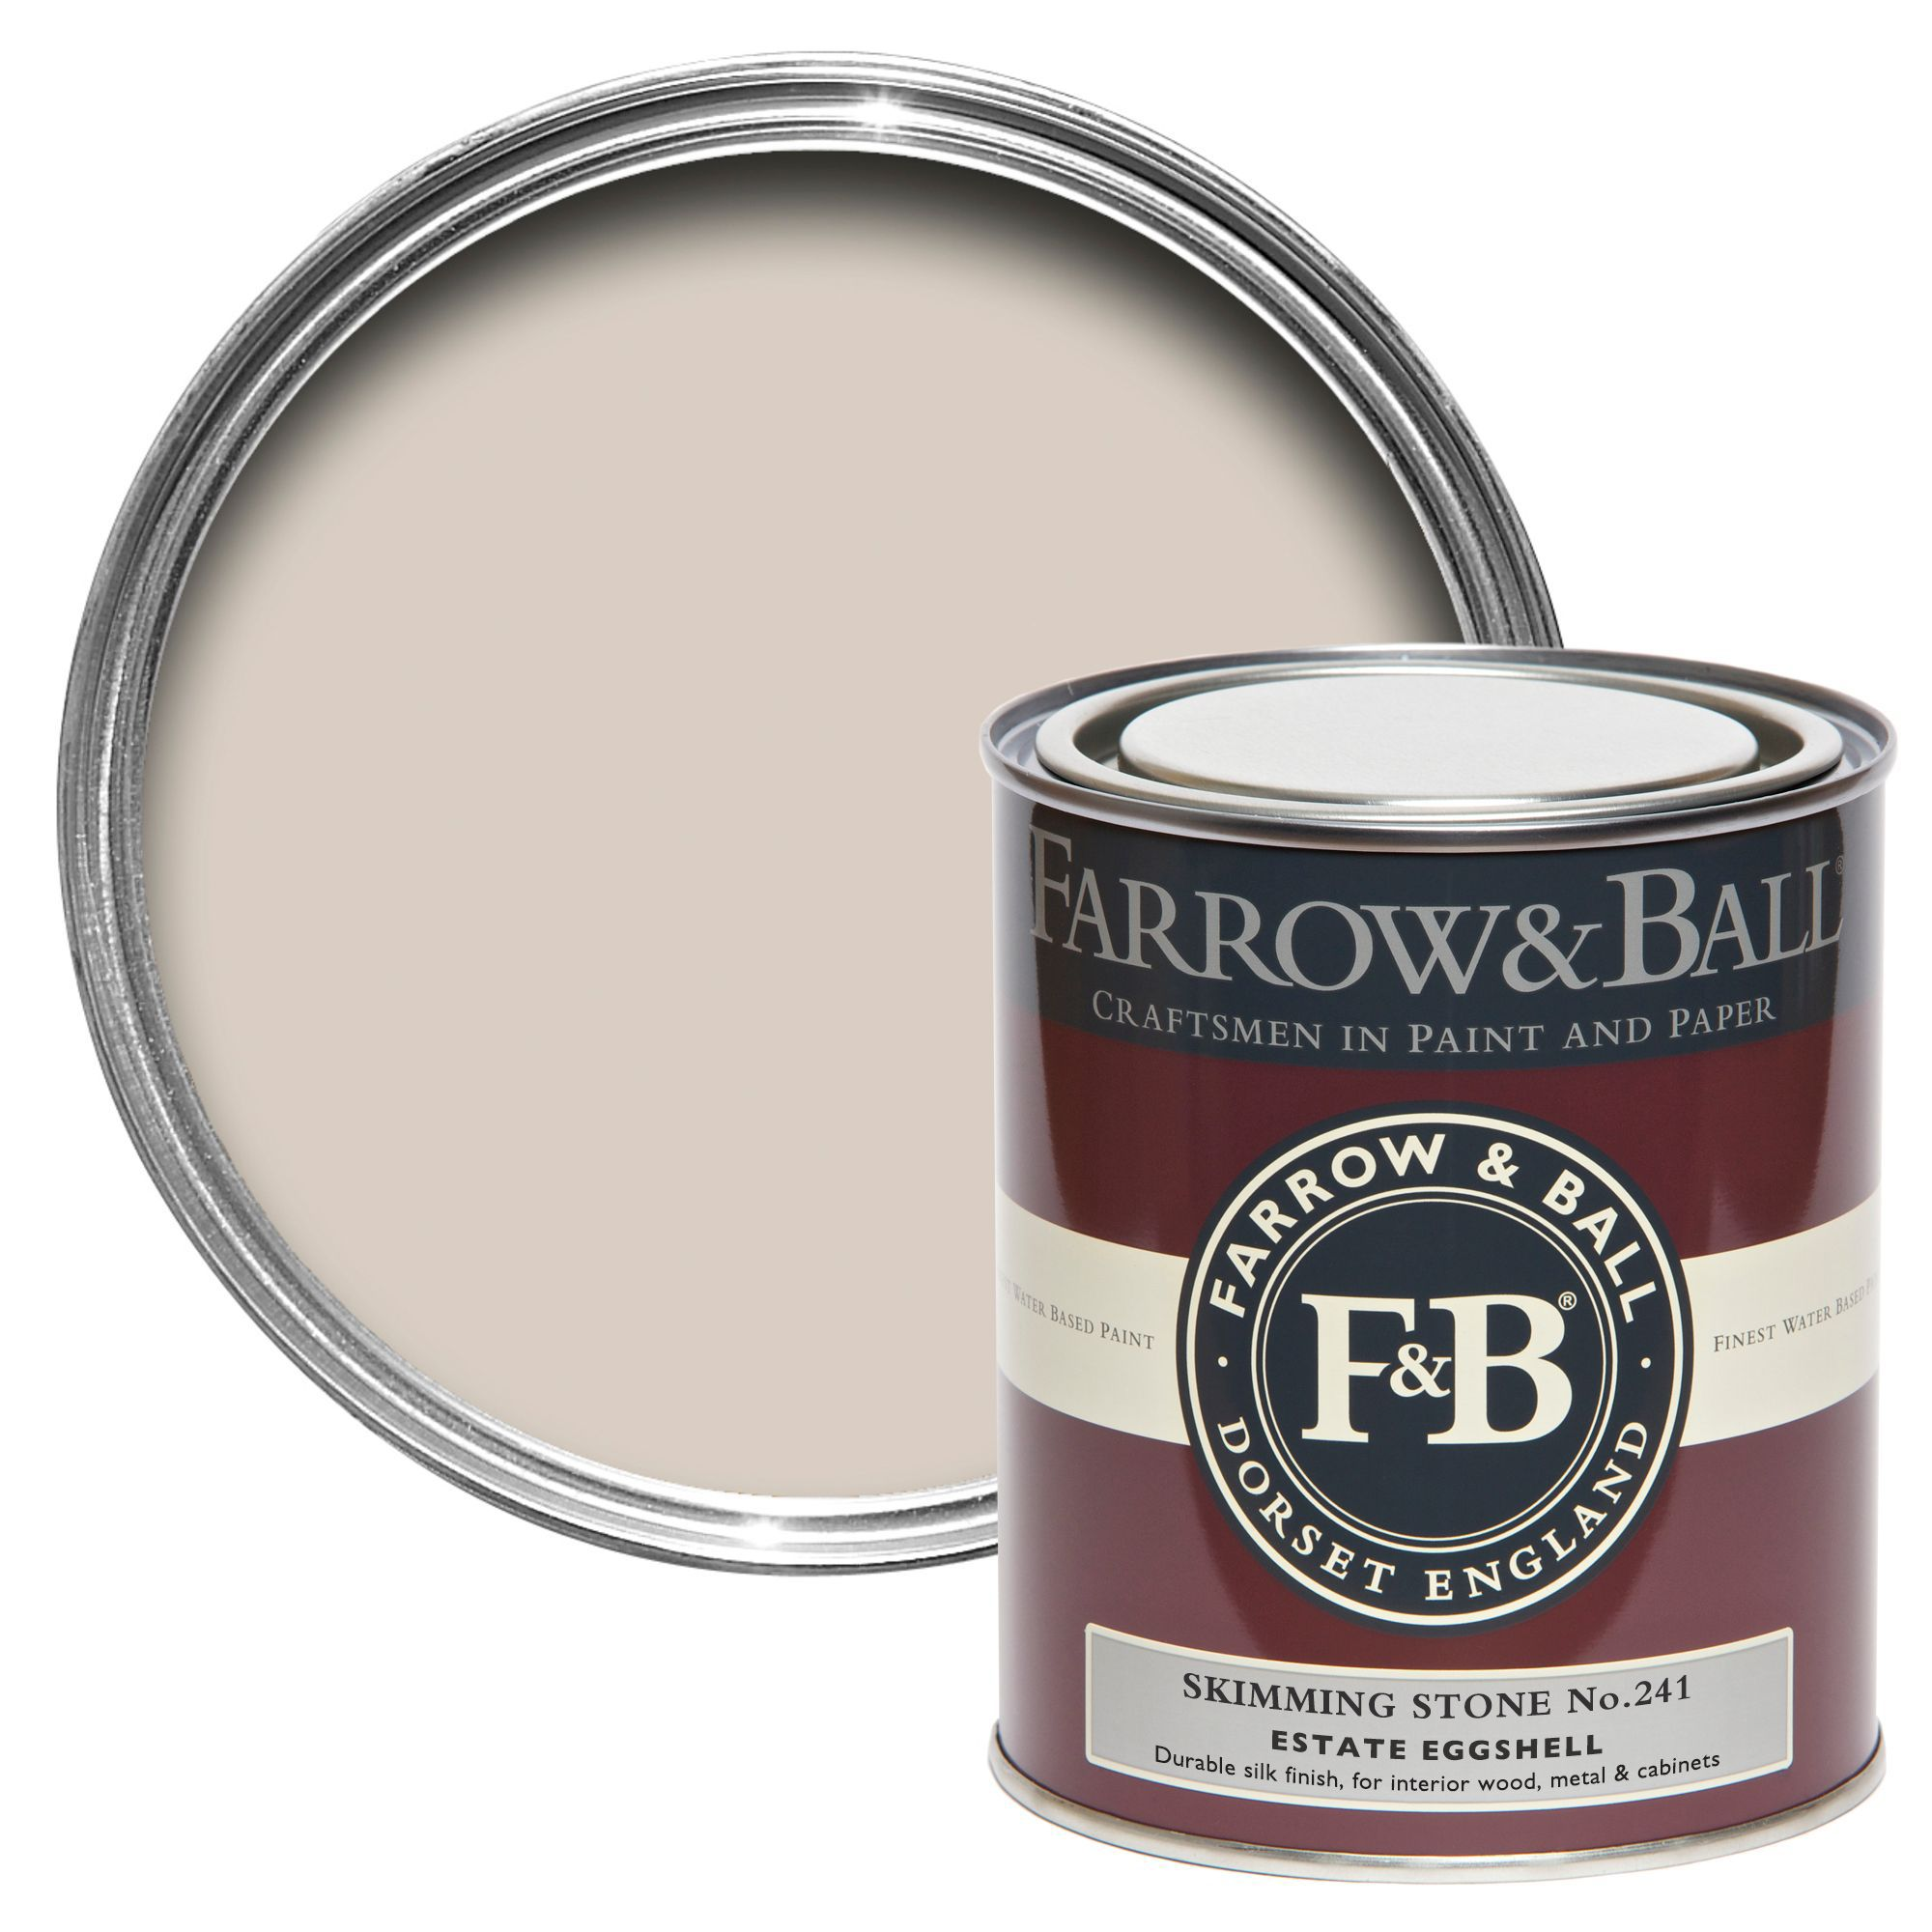 Farrow And Ball Skimming Stone Farrow And Ball Estate Eggshell Skimming Stone No 241 Silk